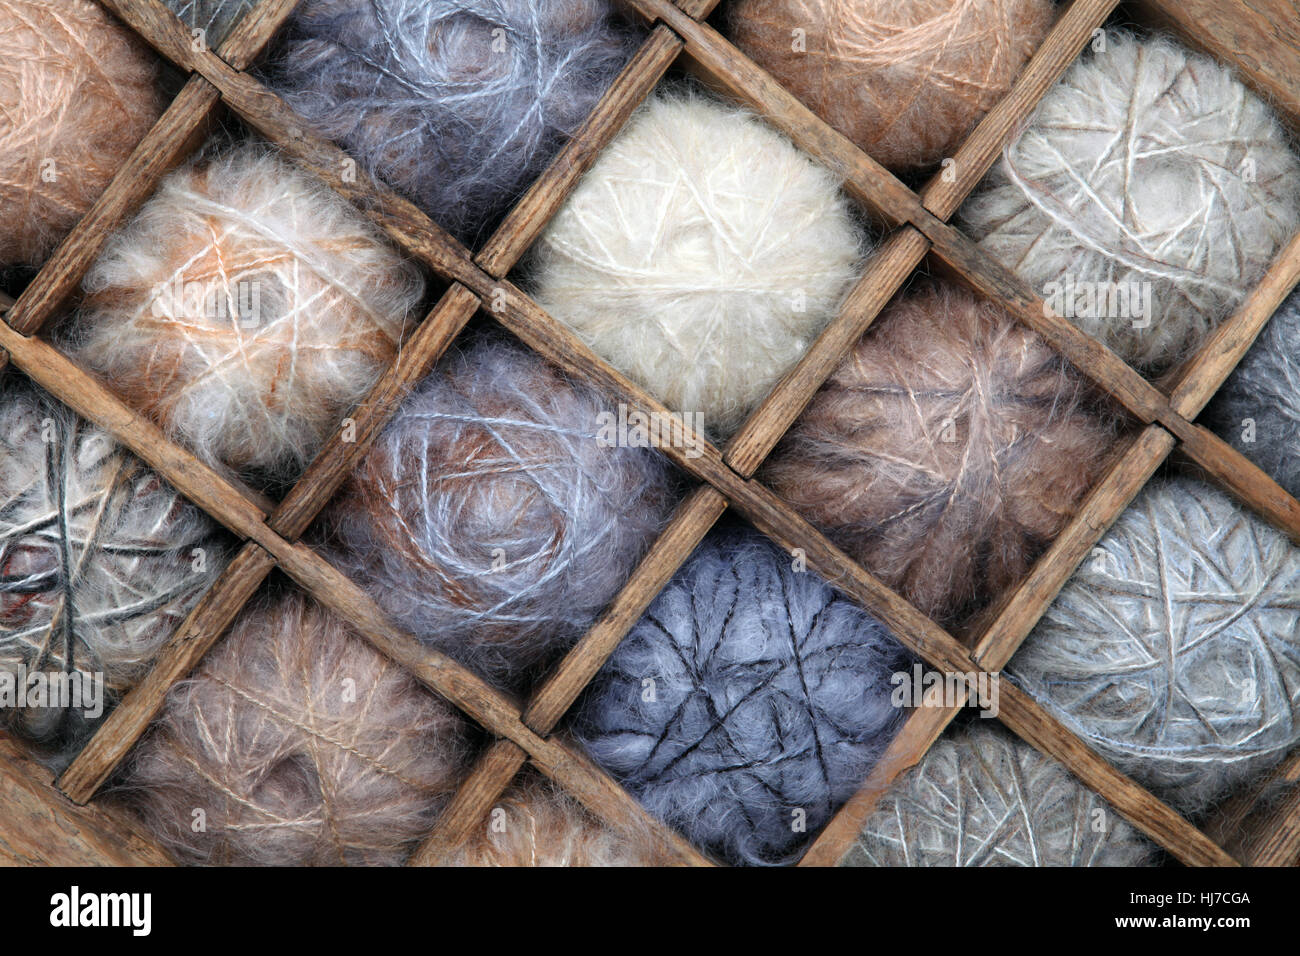 Image of colorful wool and mohair yarn collection - Stock Image